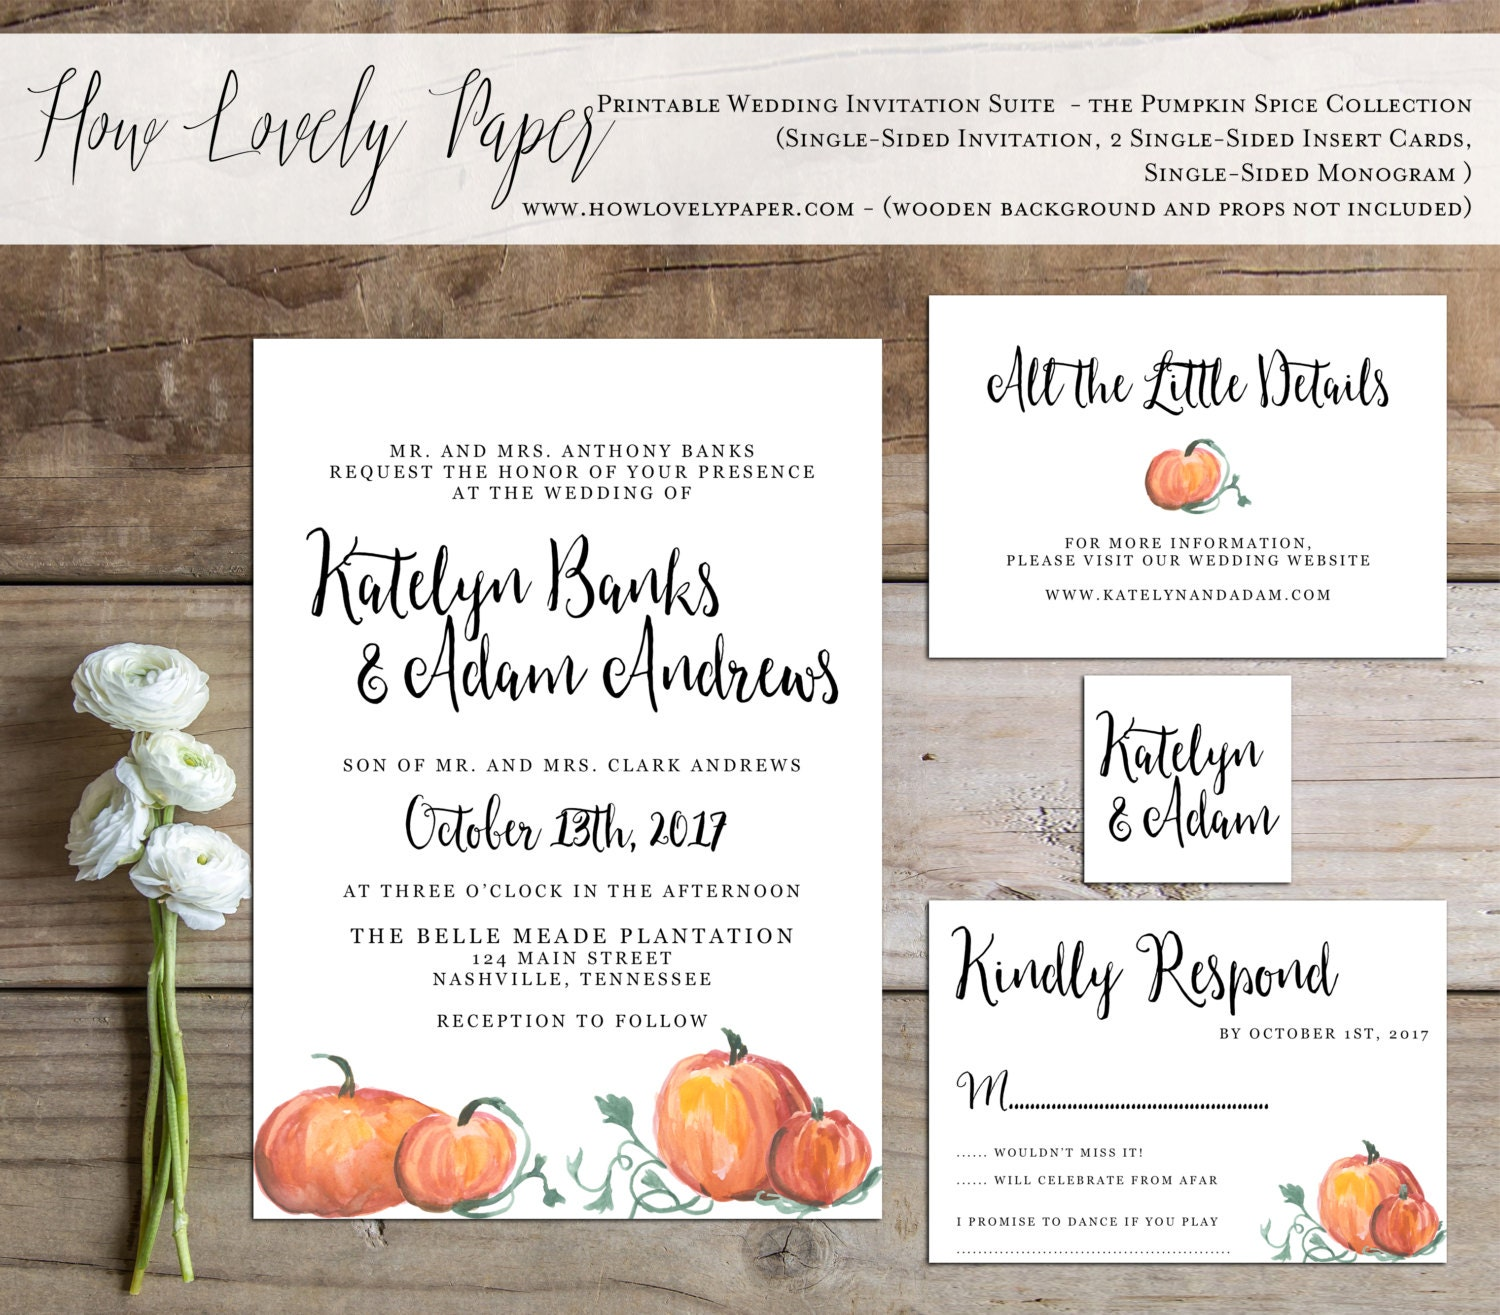 Printable fall wedding invitation suite the pumpkin spice for Fall wedding invitations with pumpkins